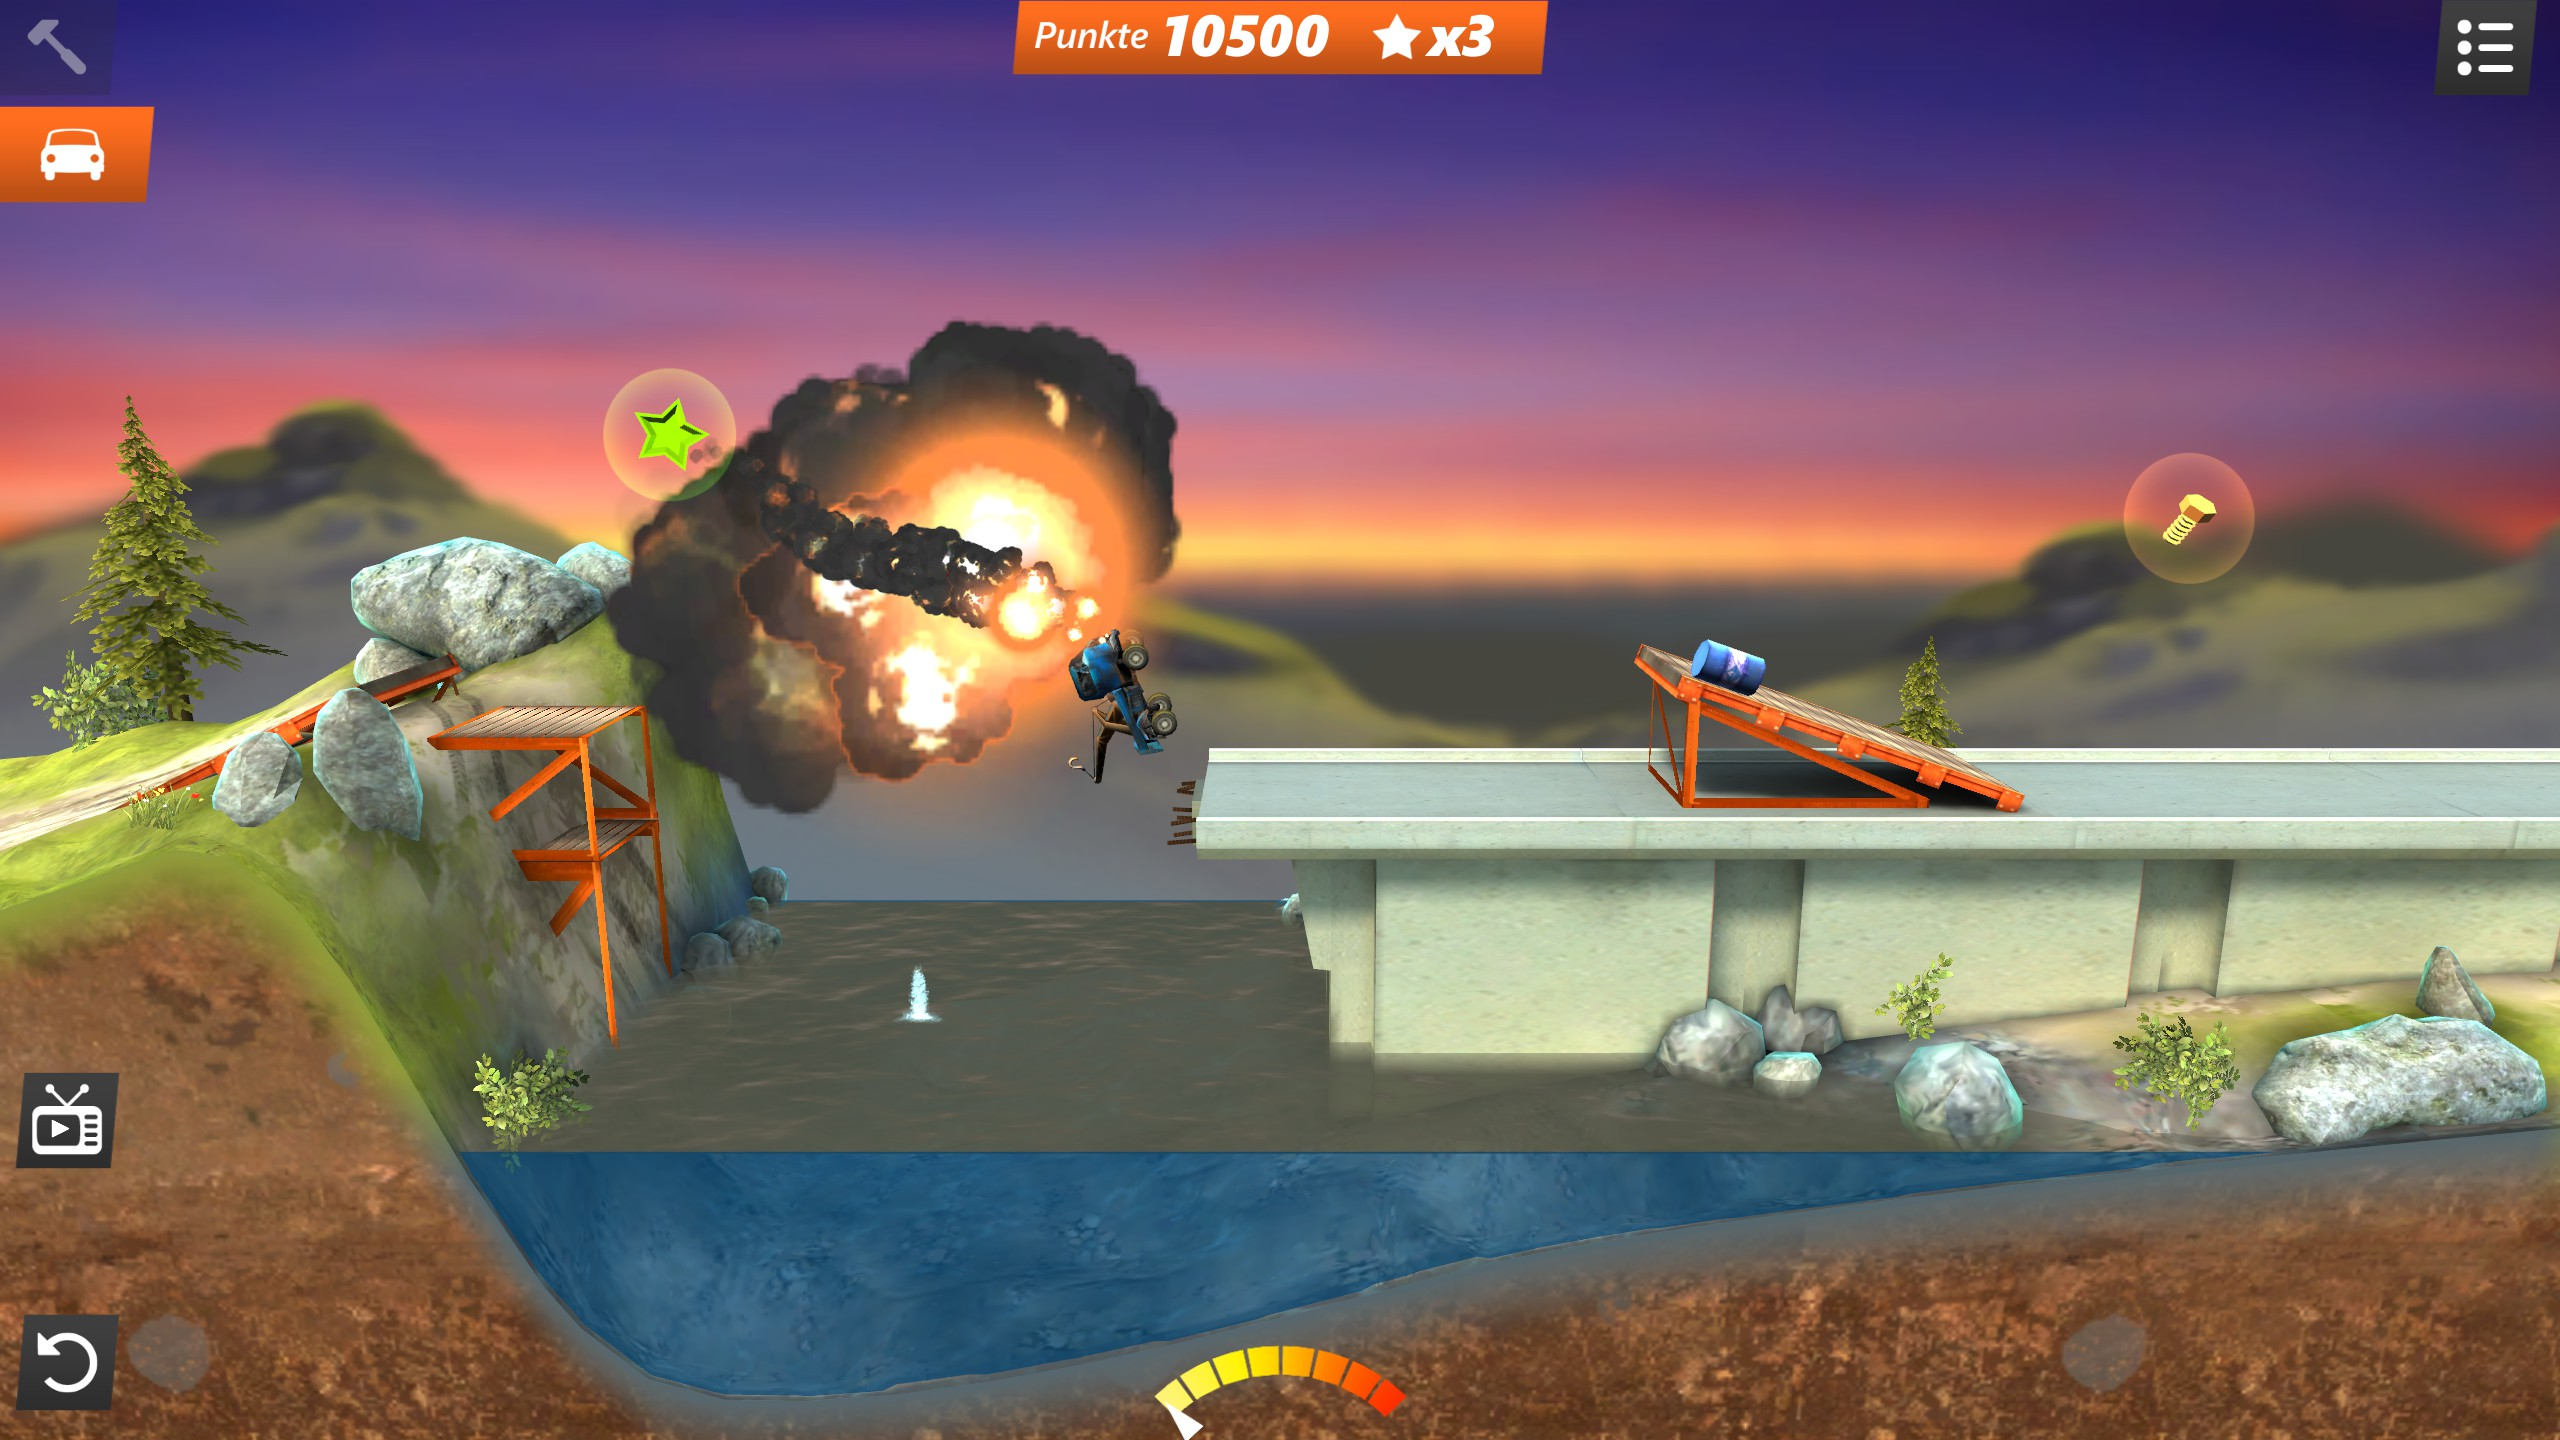 Bridge_Constructor_Stunts (1)